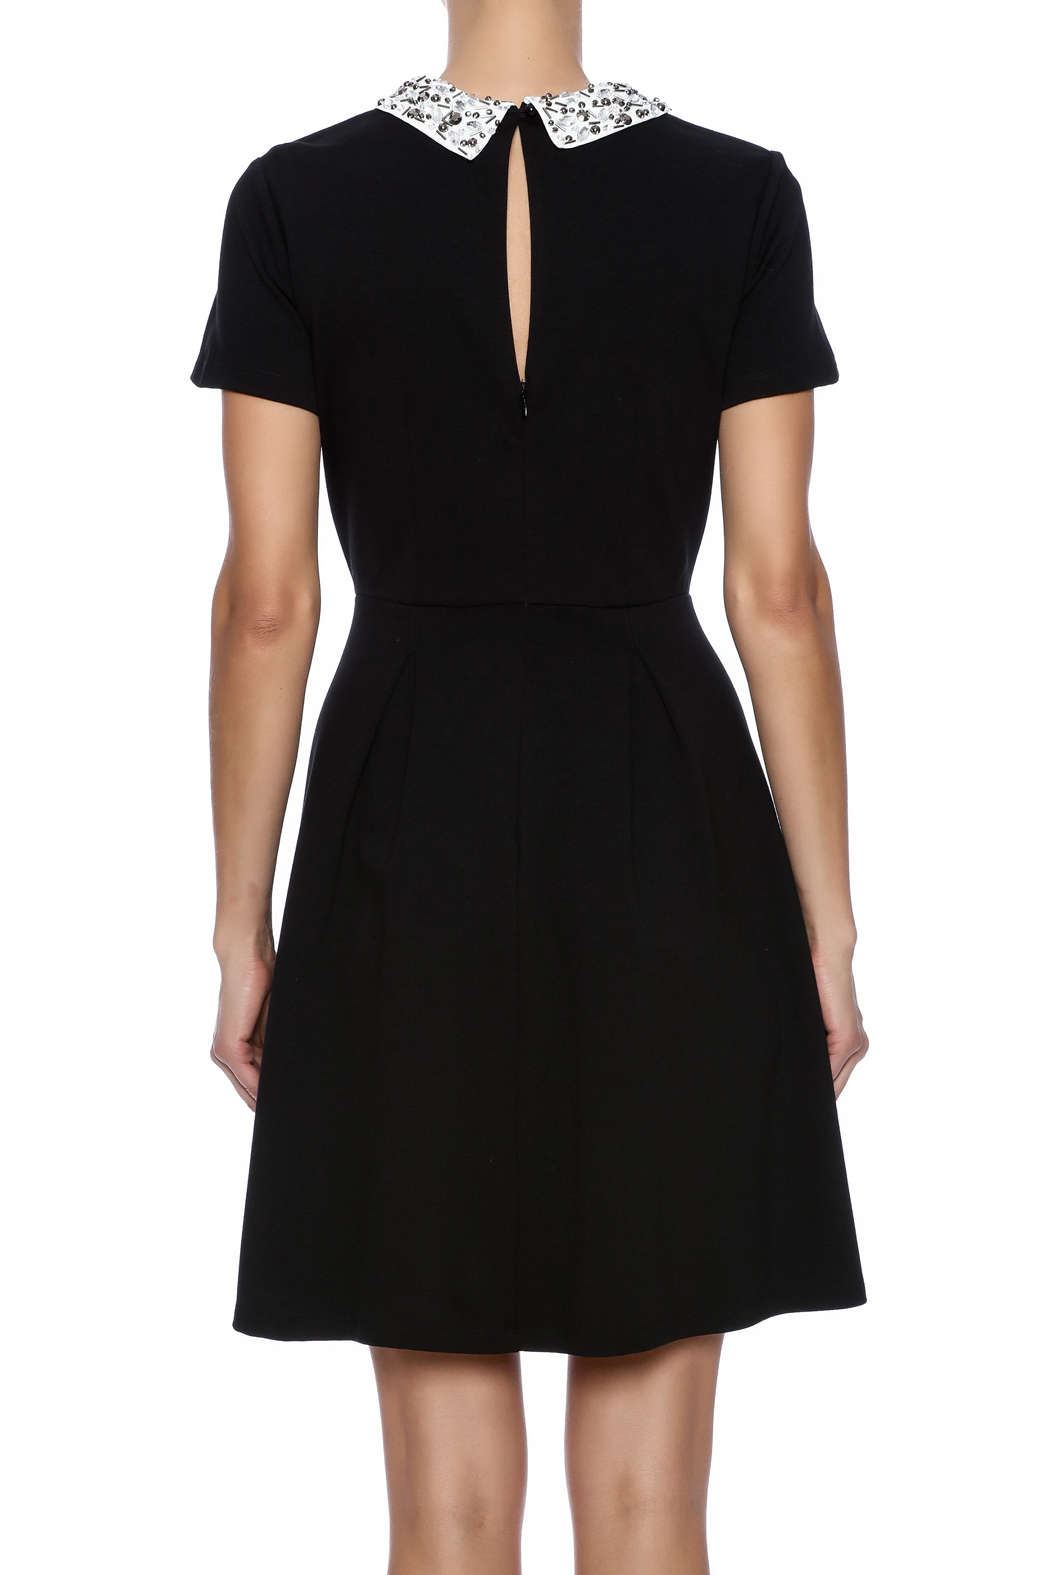 Kut from the Kloth Gem Collar Dress - Back Cropped Image